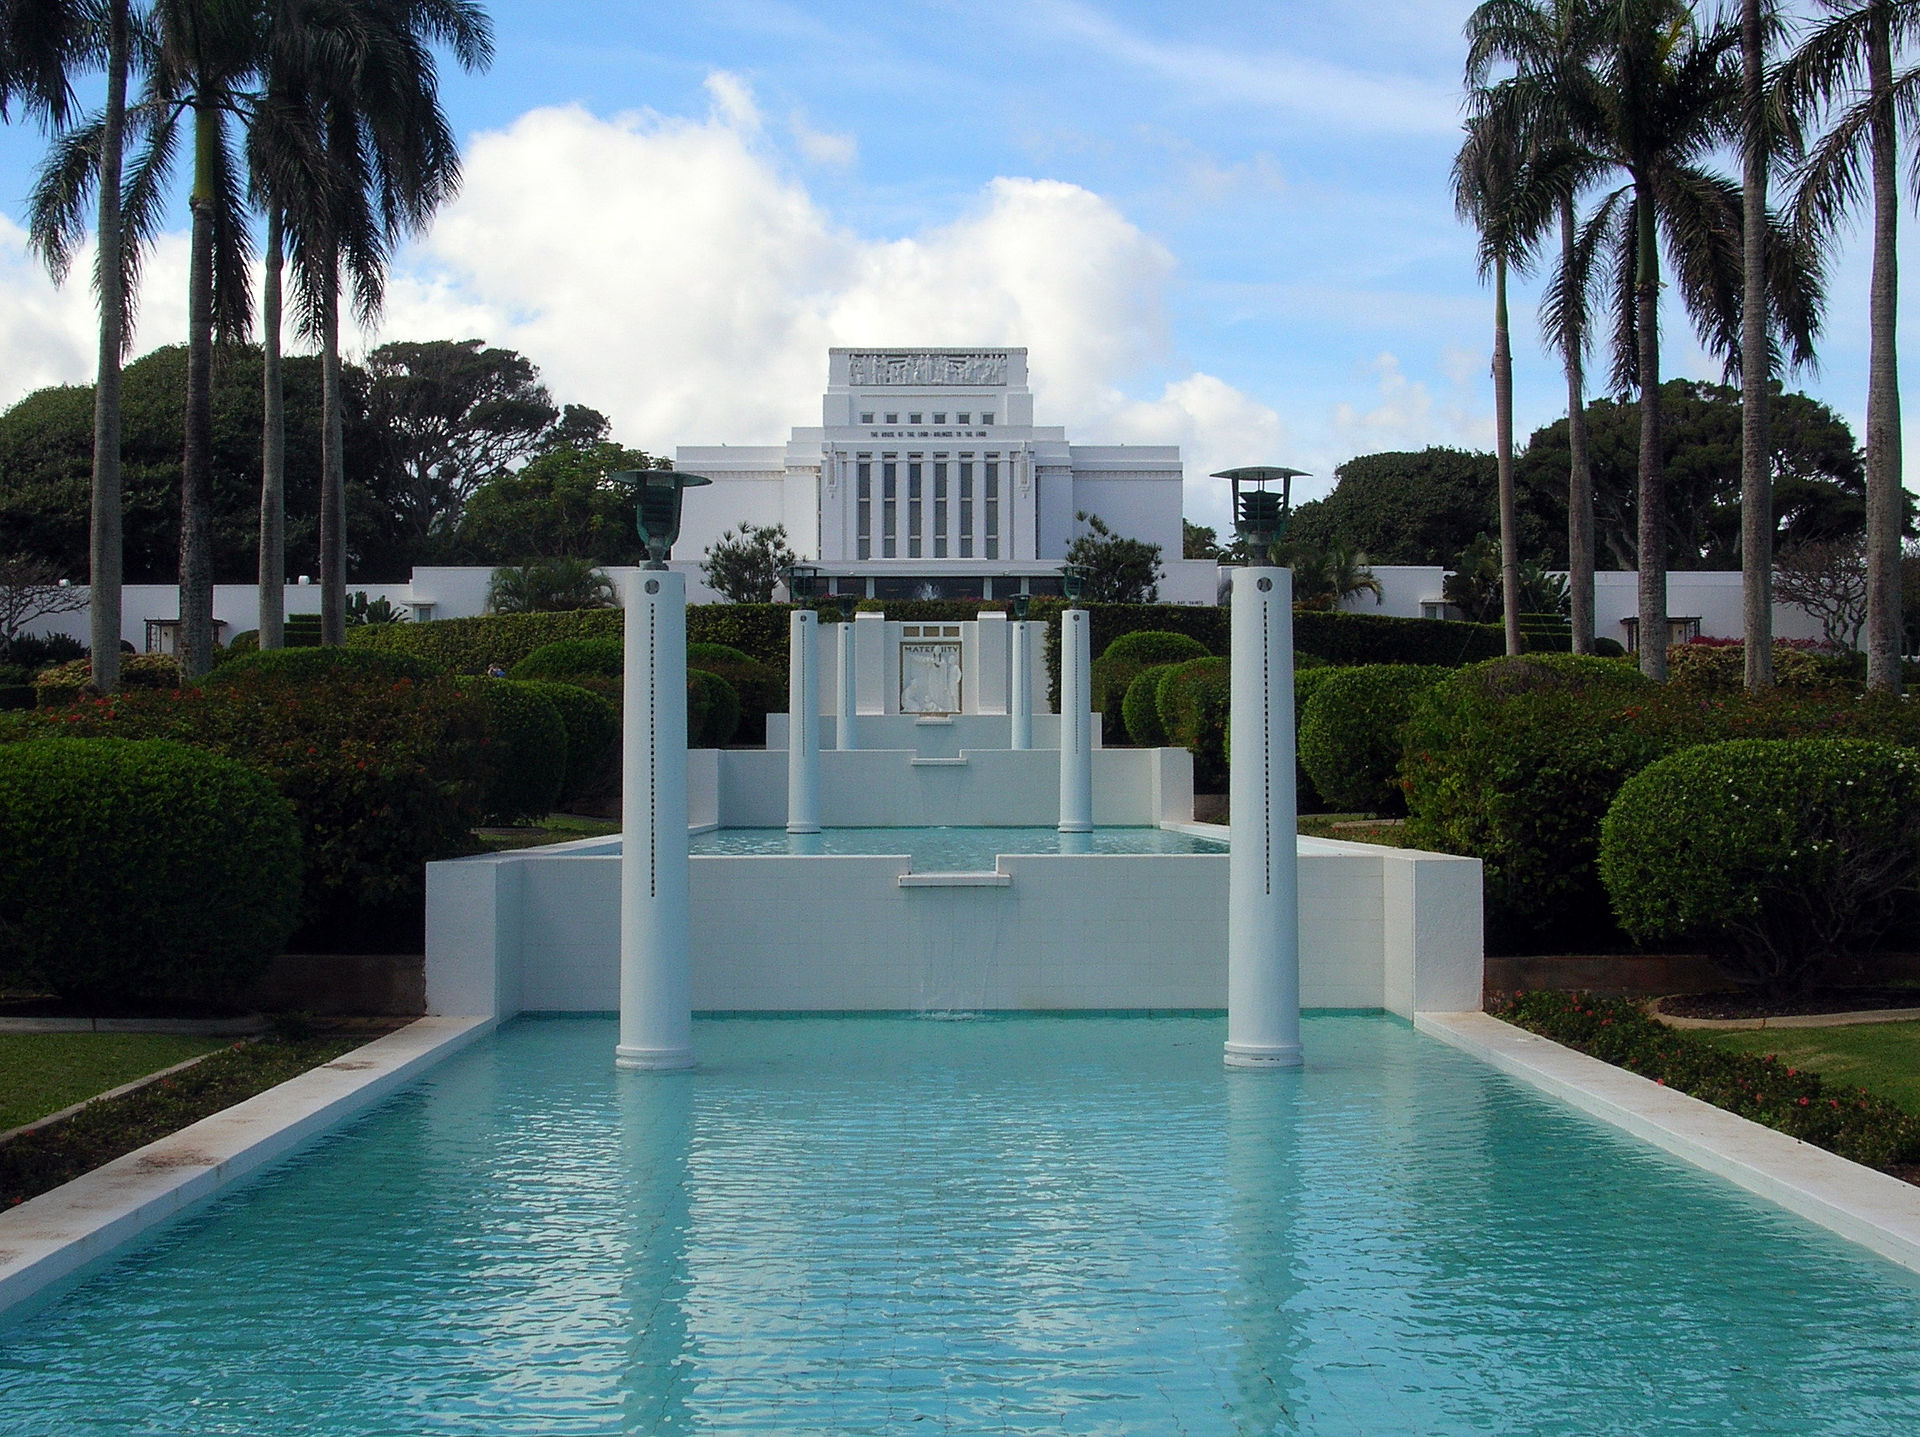 byu hawaii temple and foundation